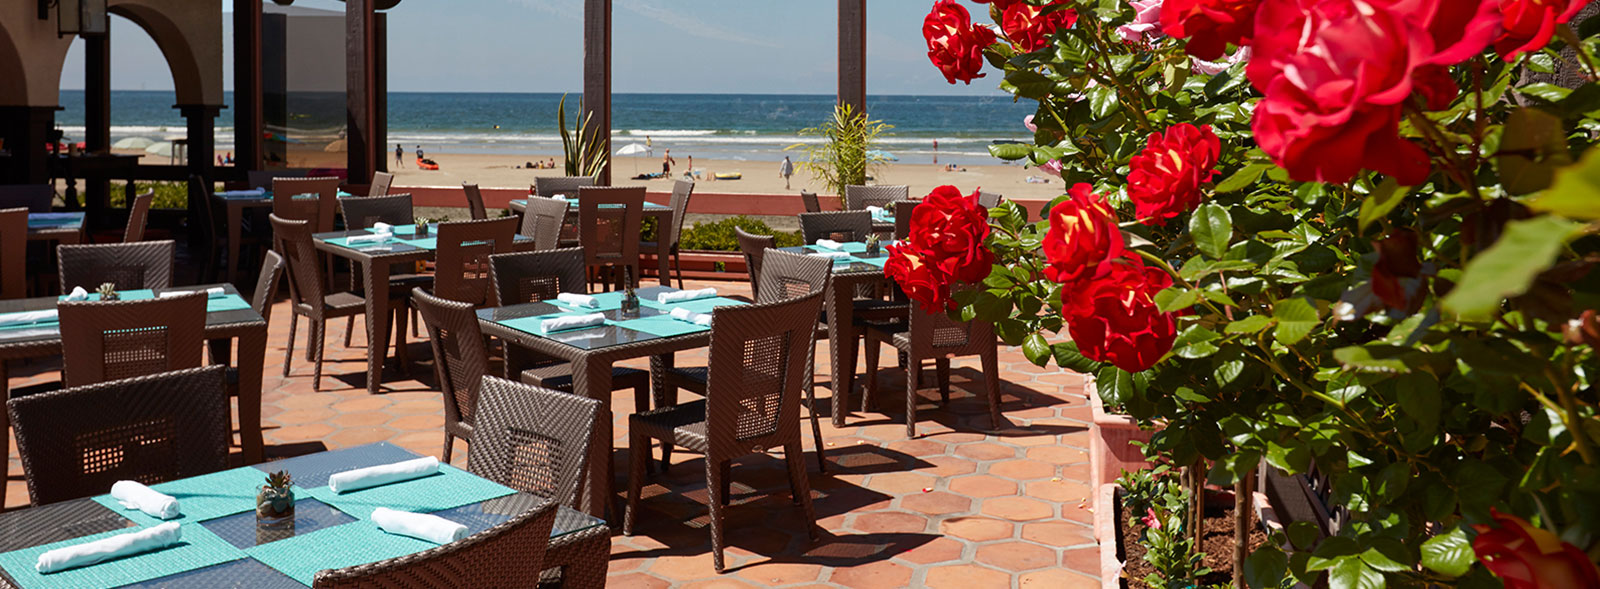 Dining at La Jolla Shores Hotel